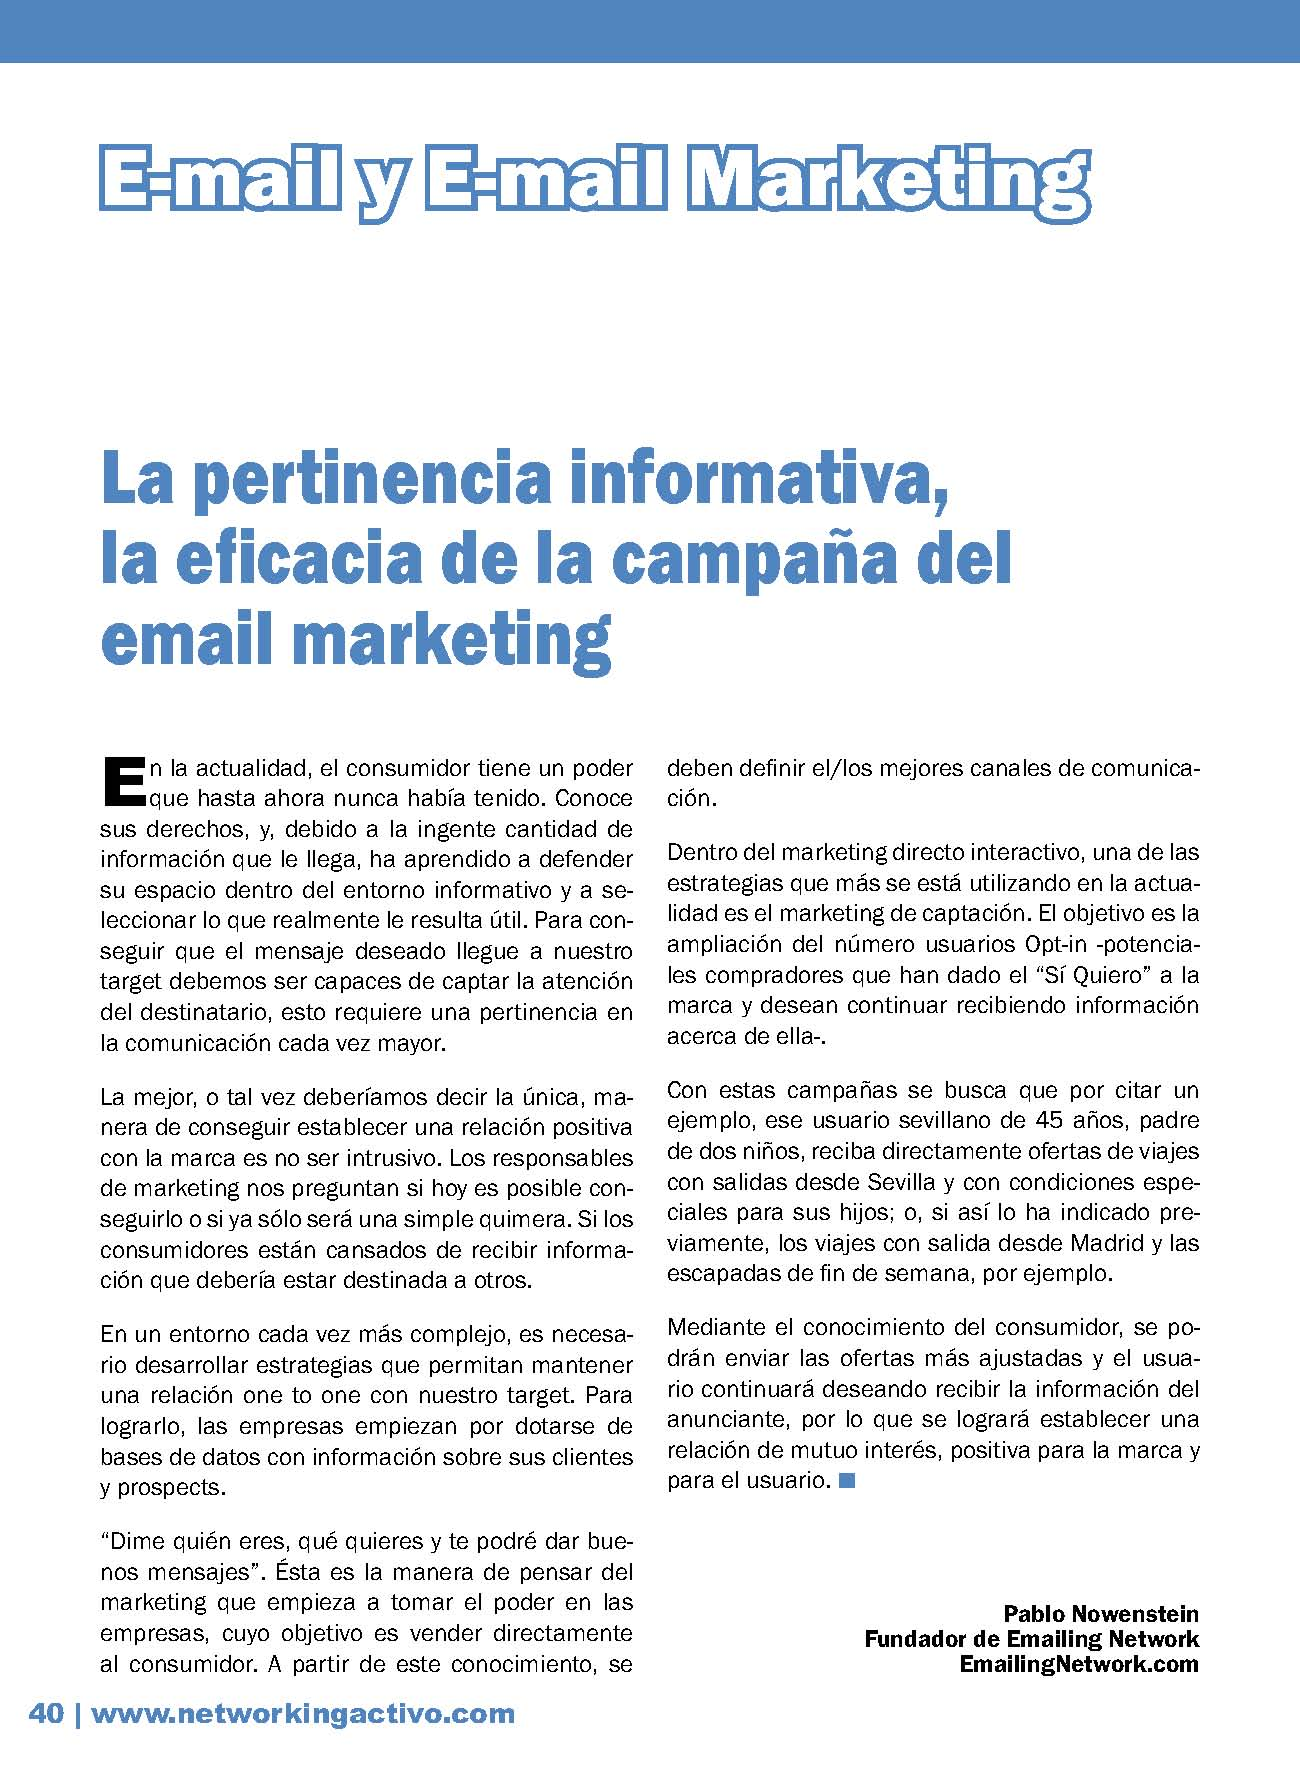 e-Mail M&aacute;rketing